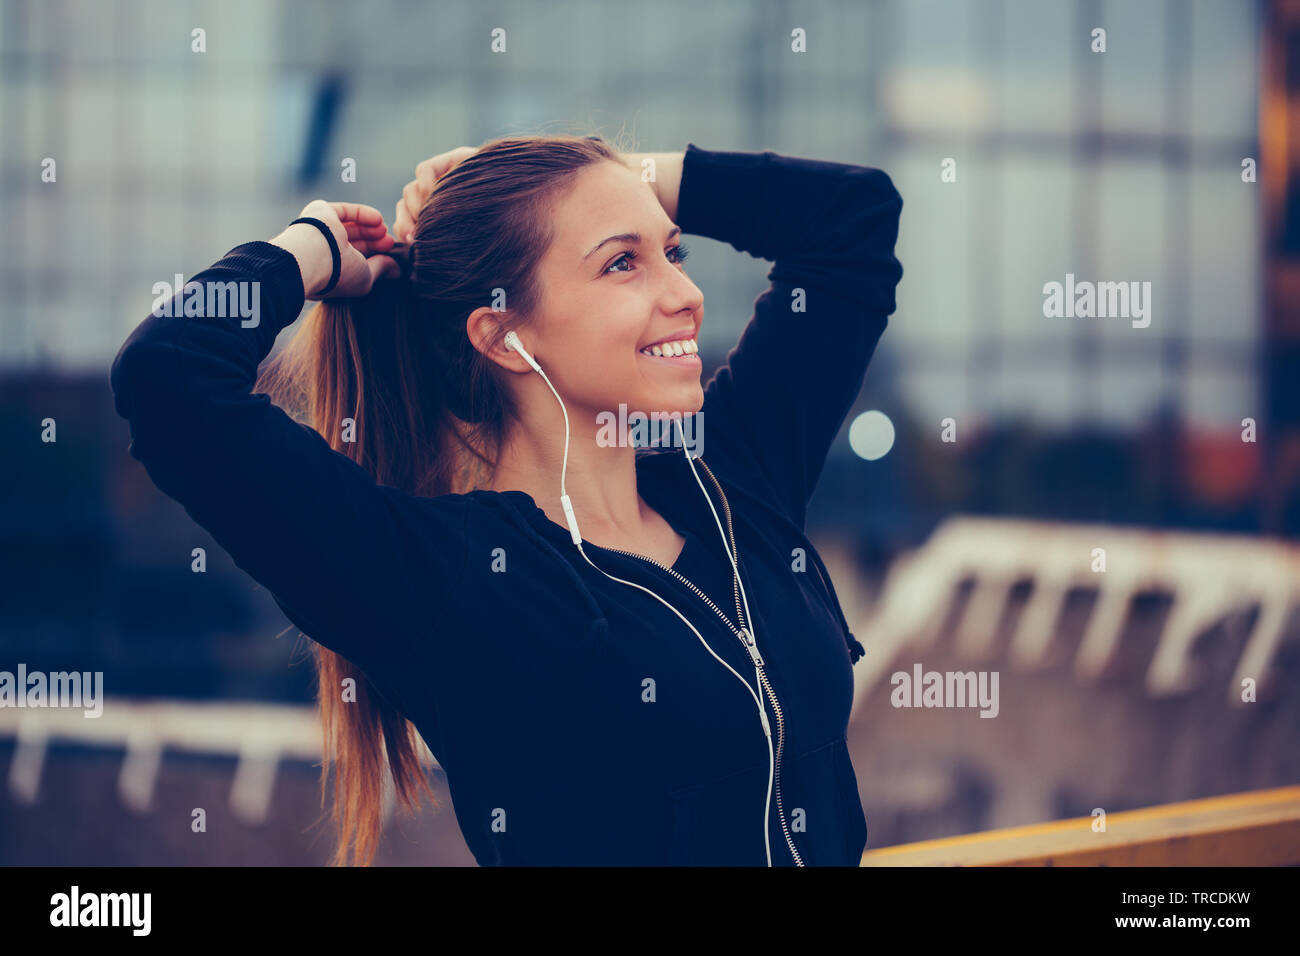 Beautiful sporty girl tying hair before her workout on the bridge. - Stock Image